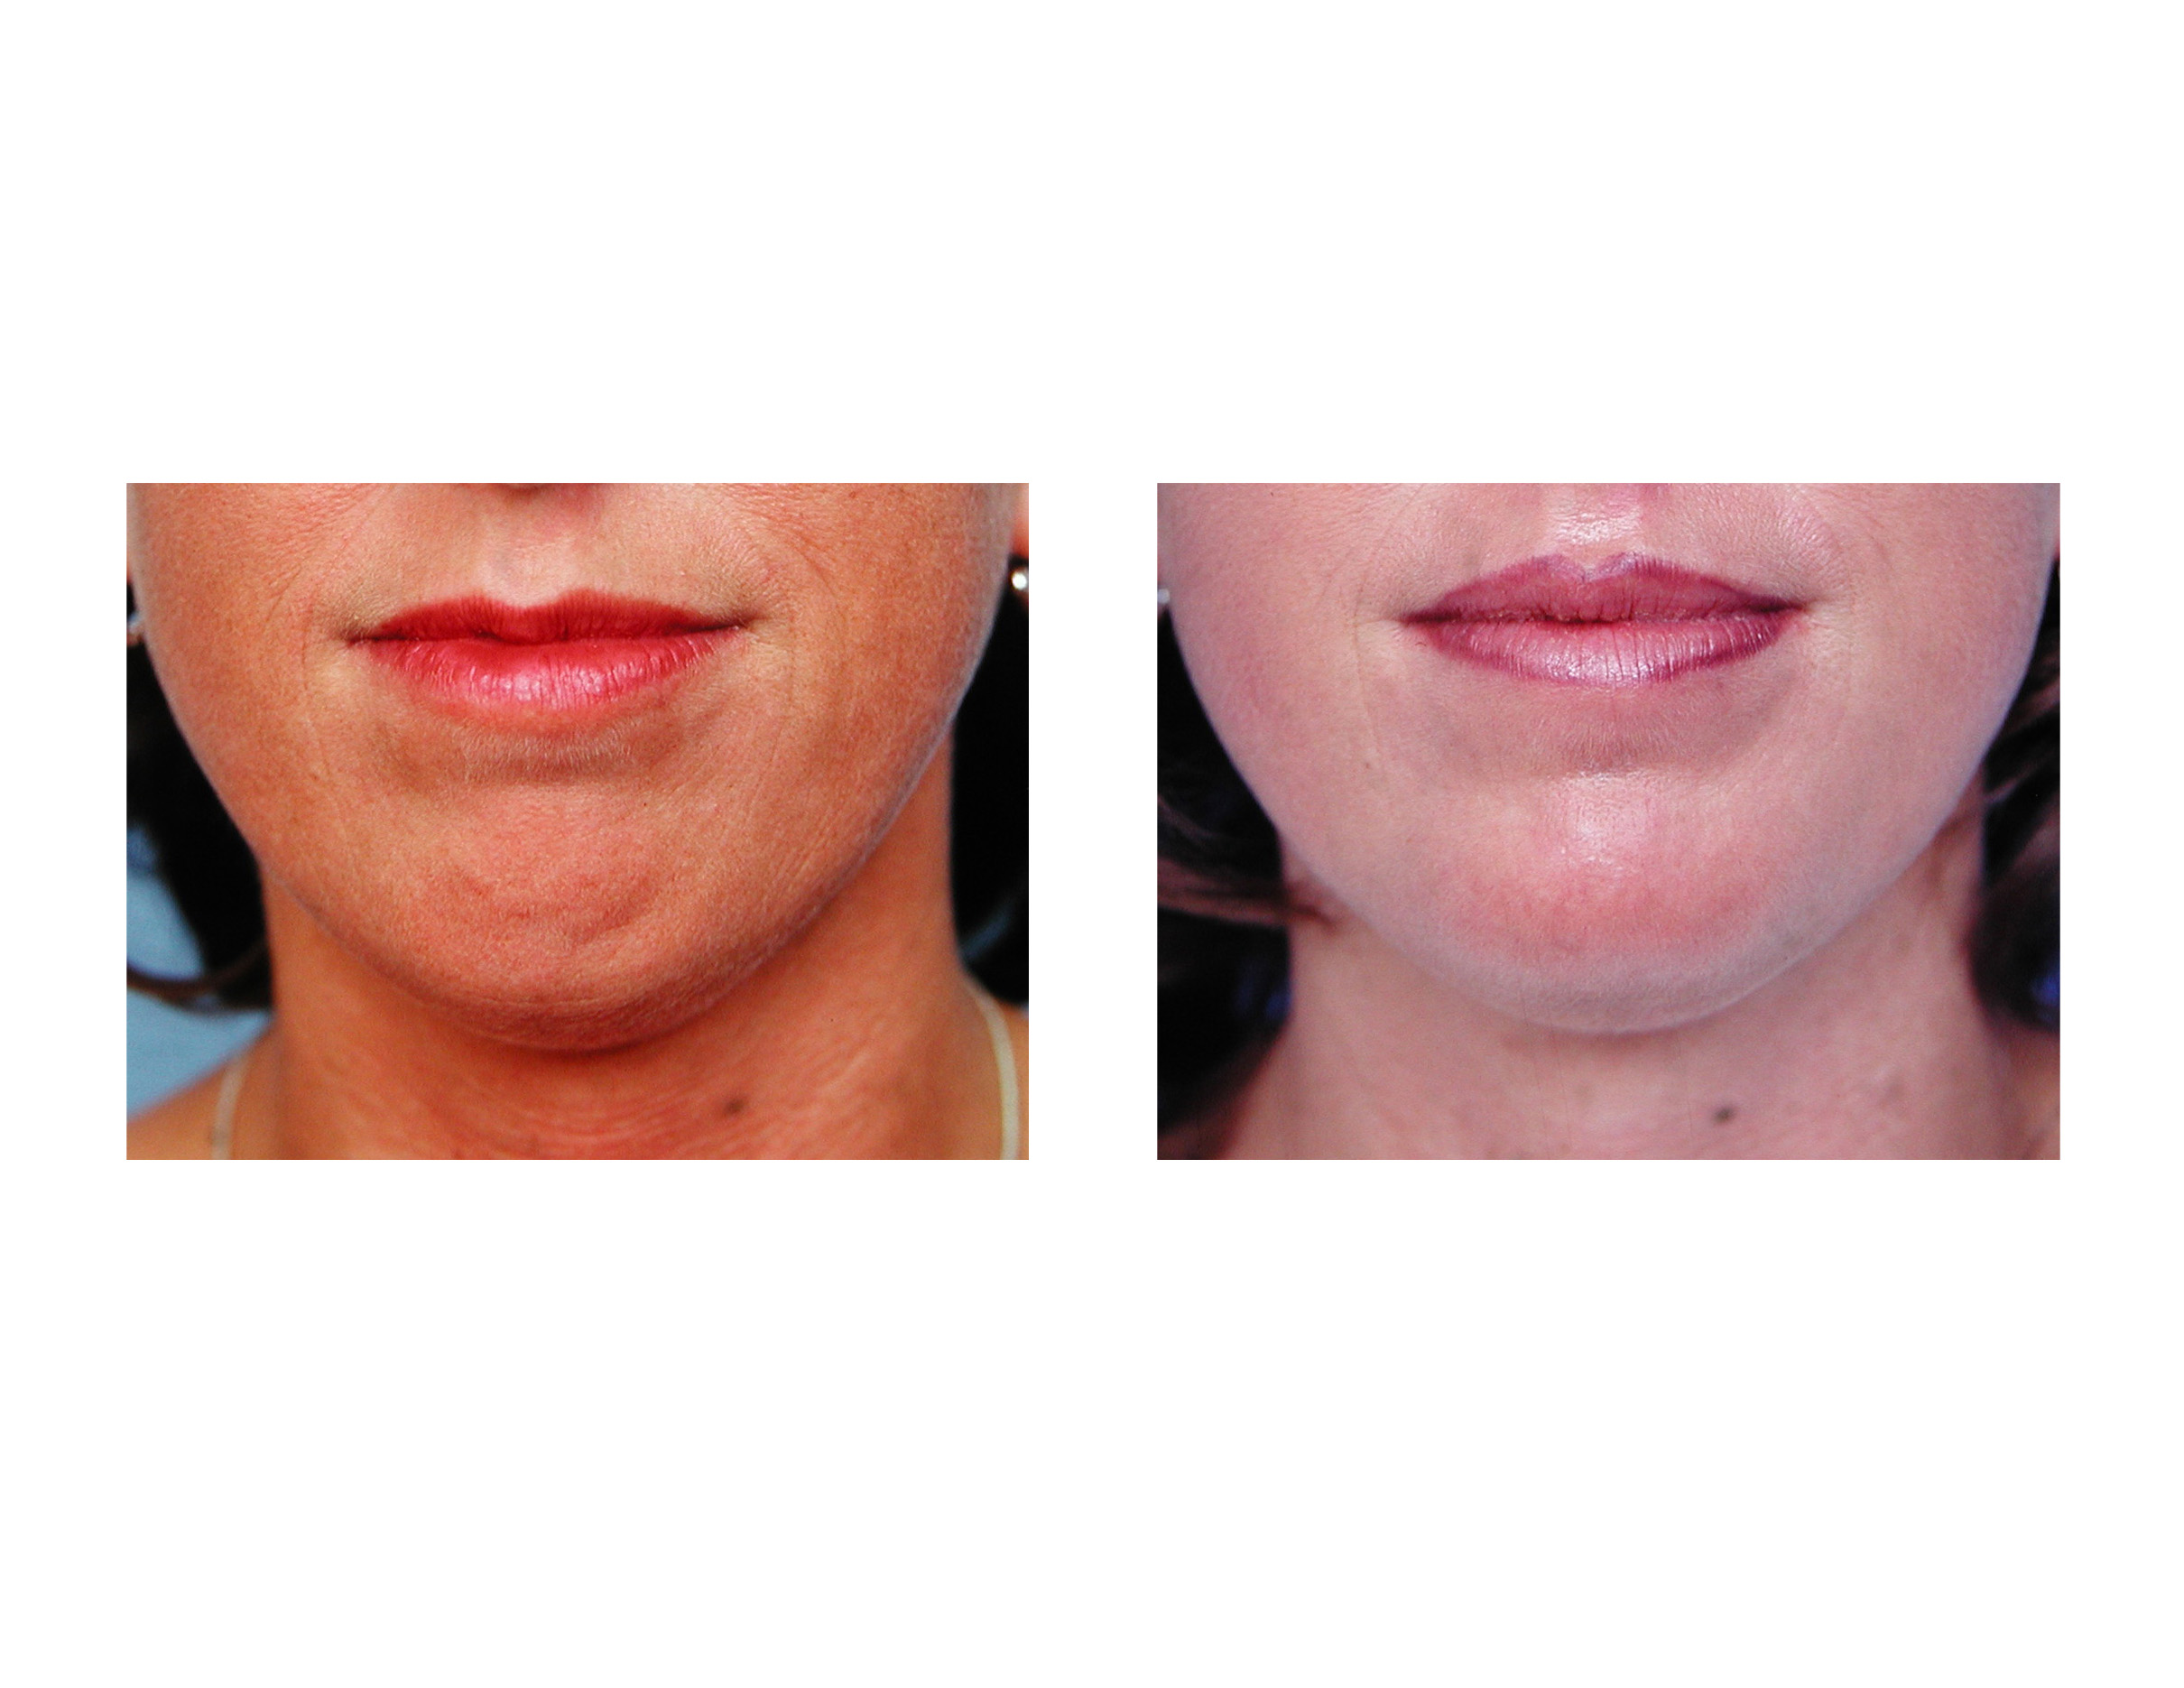 blog archivethe effects of chin augmentation on mentalis muscle